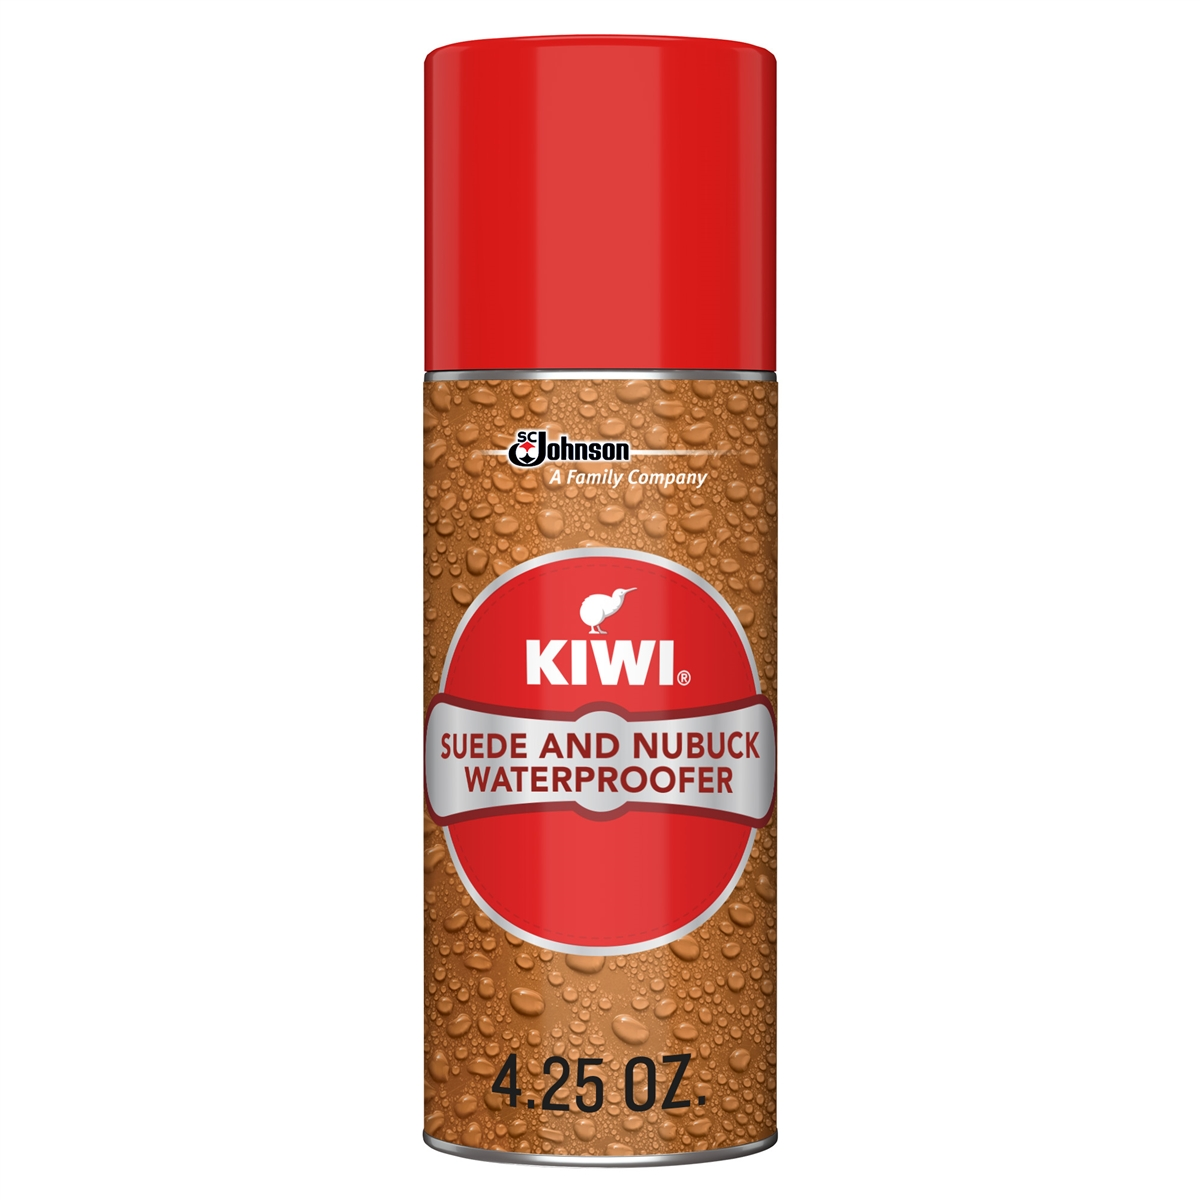 Kiwi Leather Shoe Protector Spray